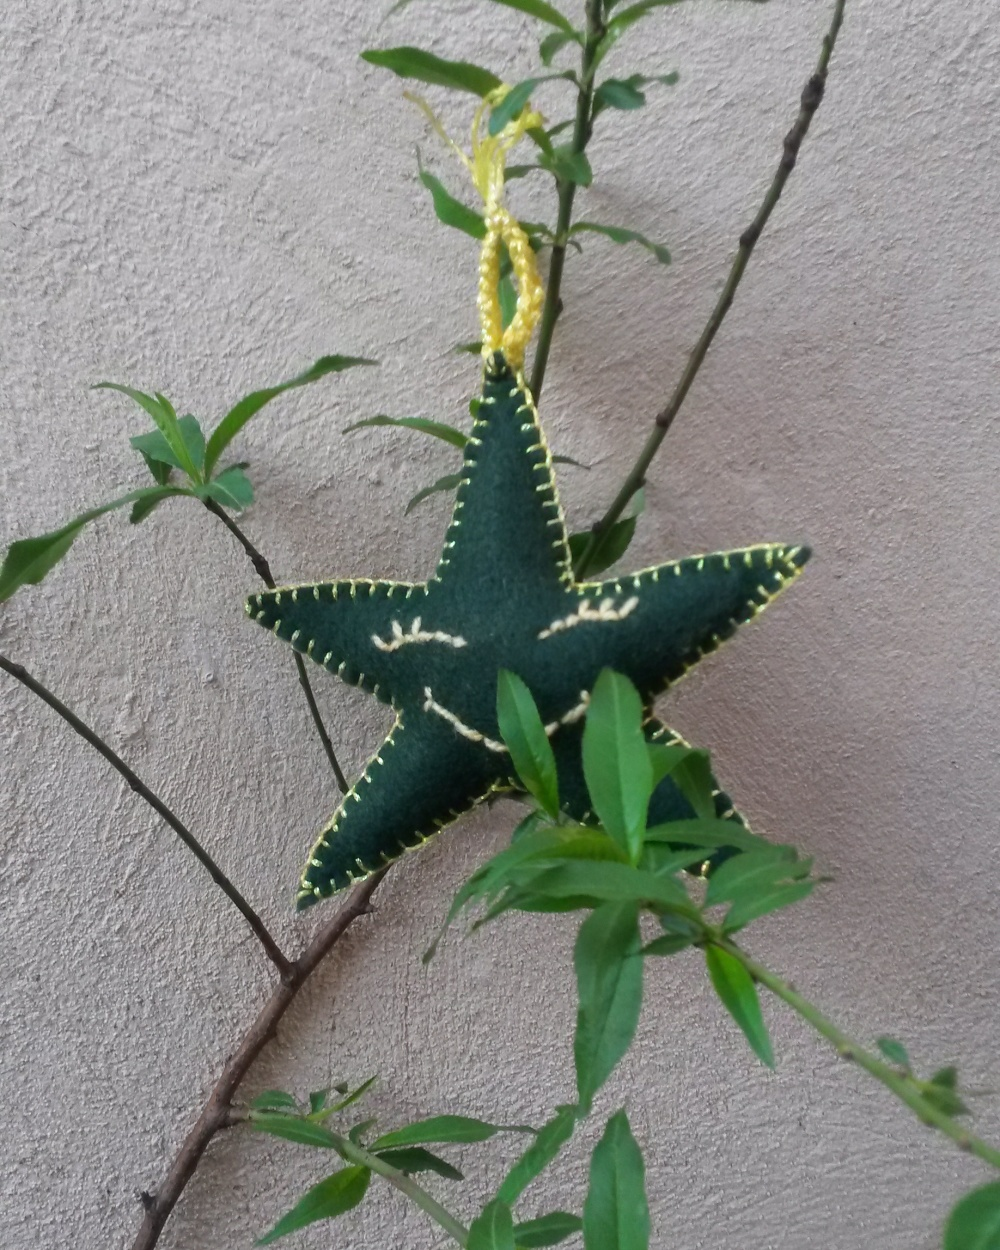 A green star smiling